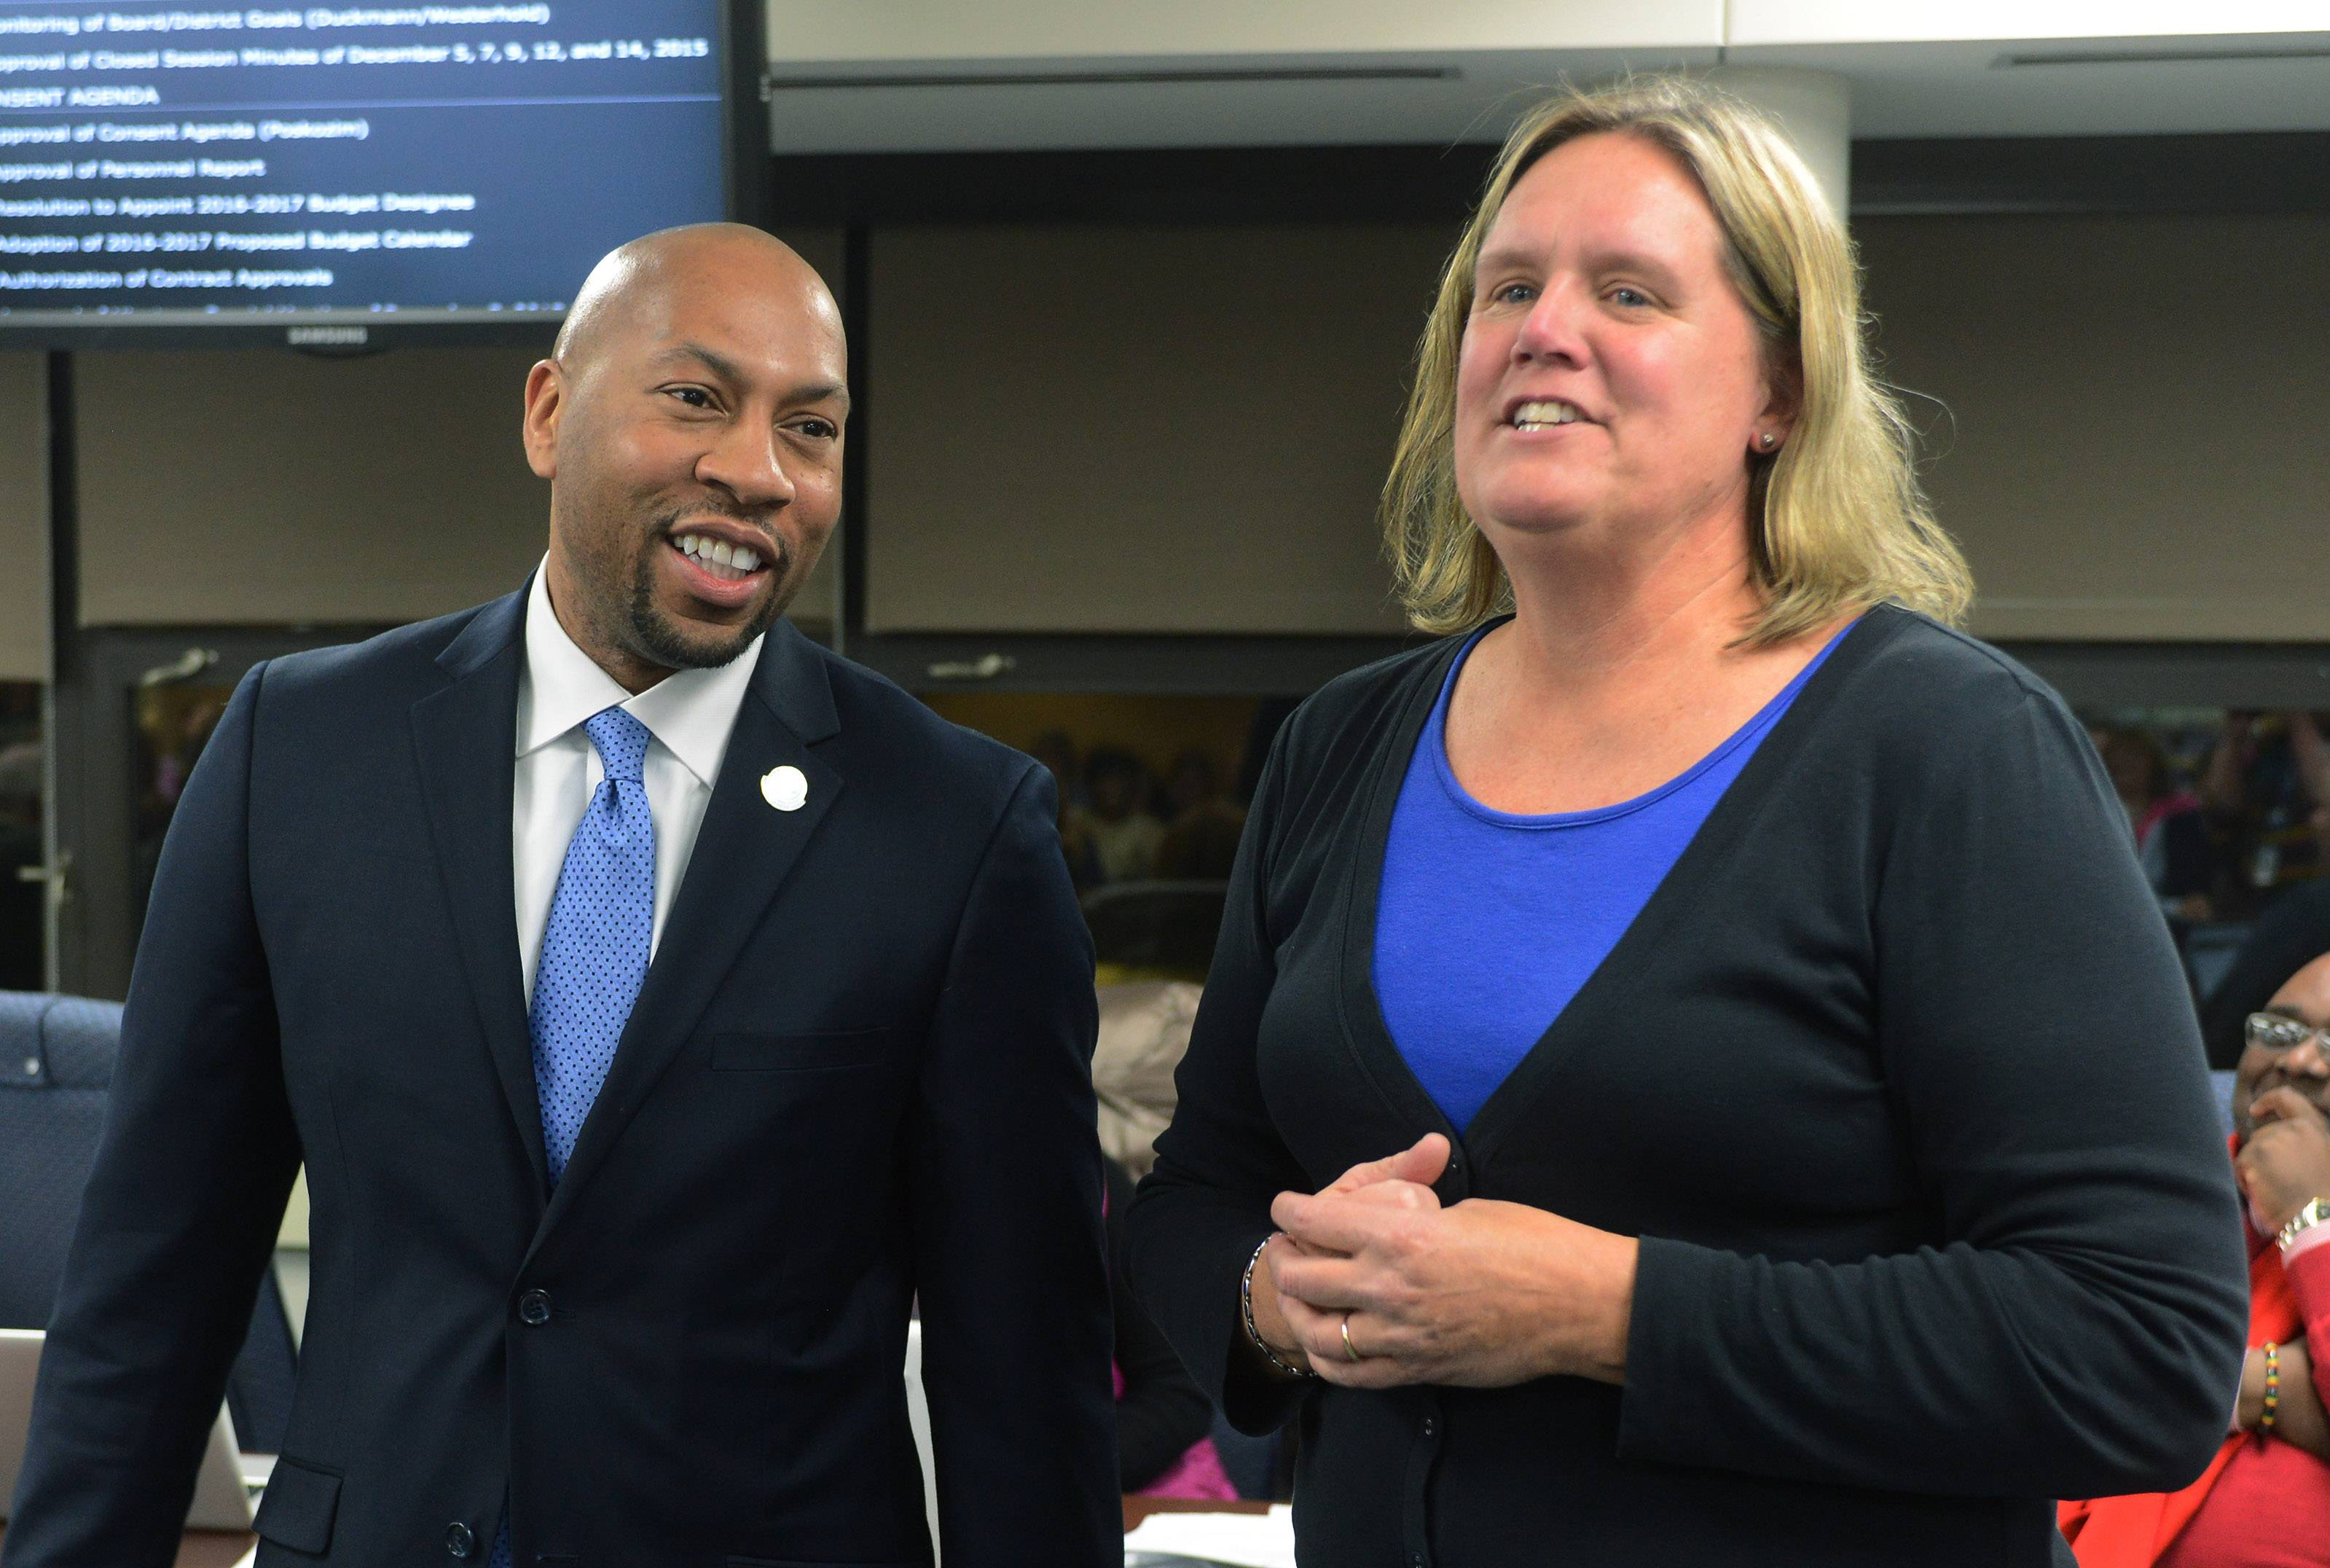 Floyd Williams Jr. was introduced by Des Plaines Elementary District 62 school board President Stephanie Duckmann in January after the approval of his contract to become the new superintendent. The board this week defended hiring Williams despite allegations of misconduct at his previous job.